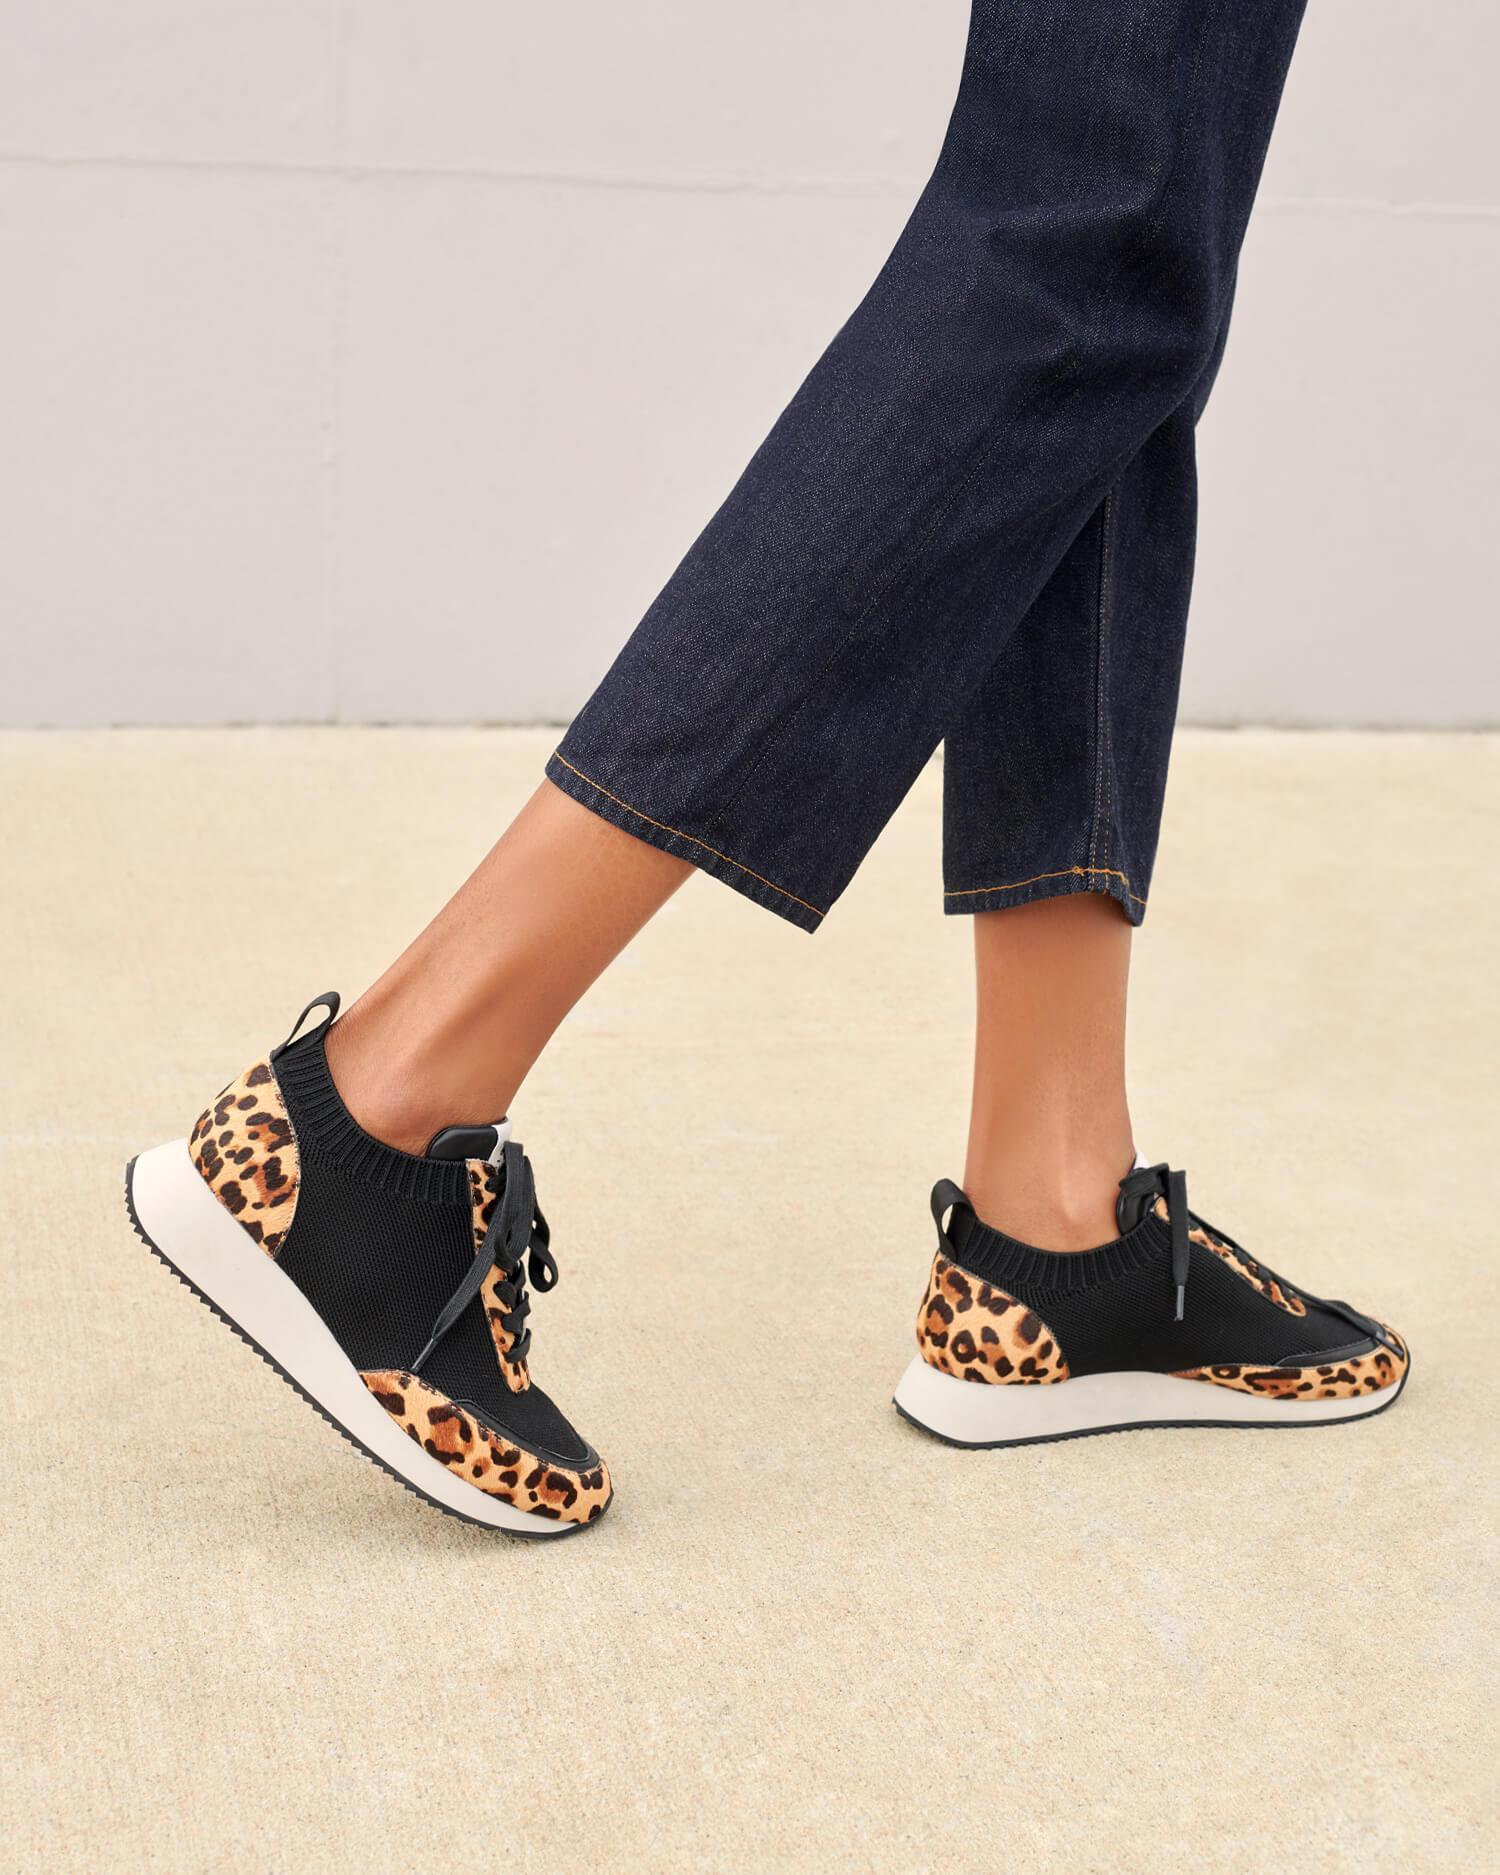 Color:Black/Light Leopard knit/haircalf; Color: Black/Light Leopard knit/haircalf